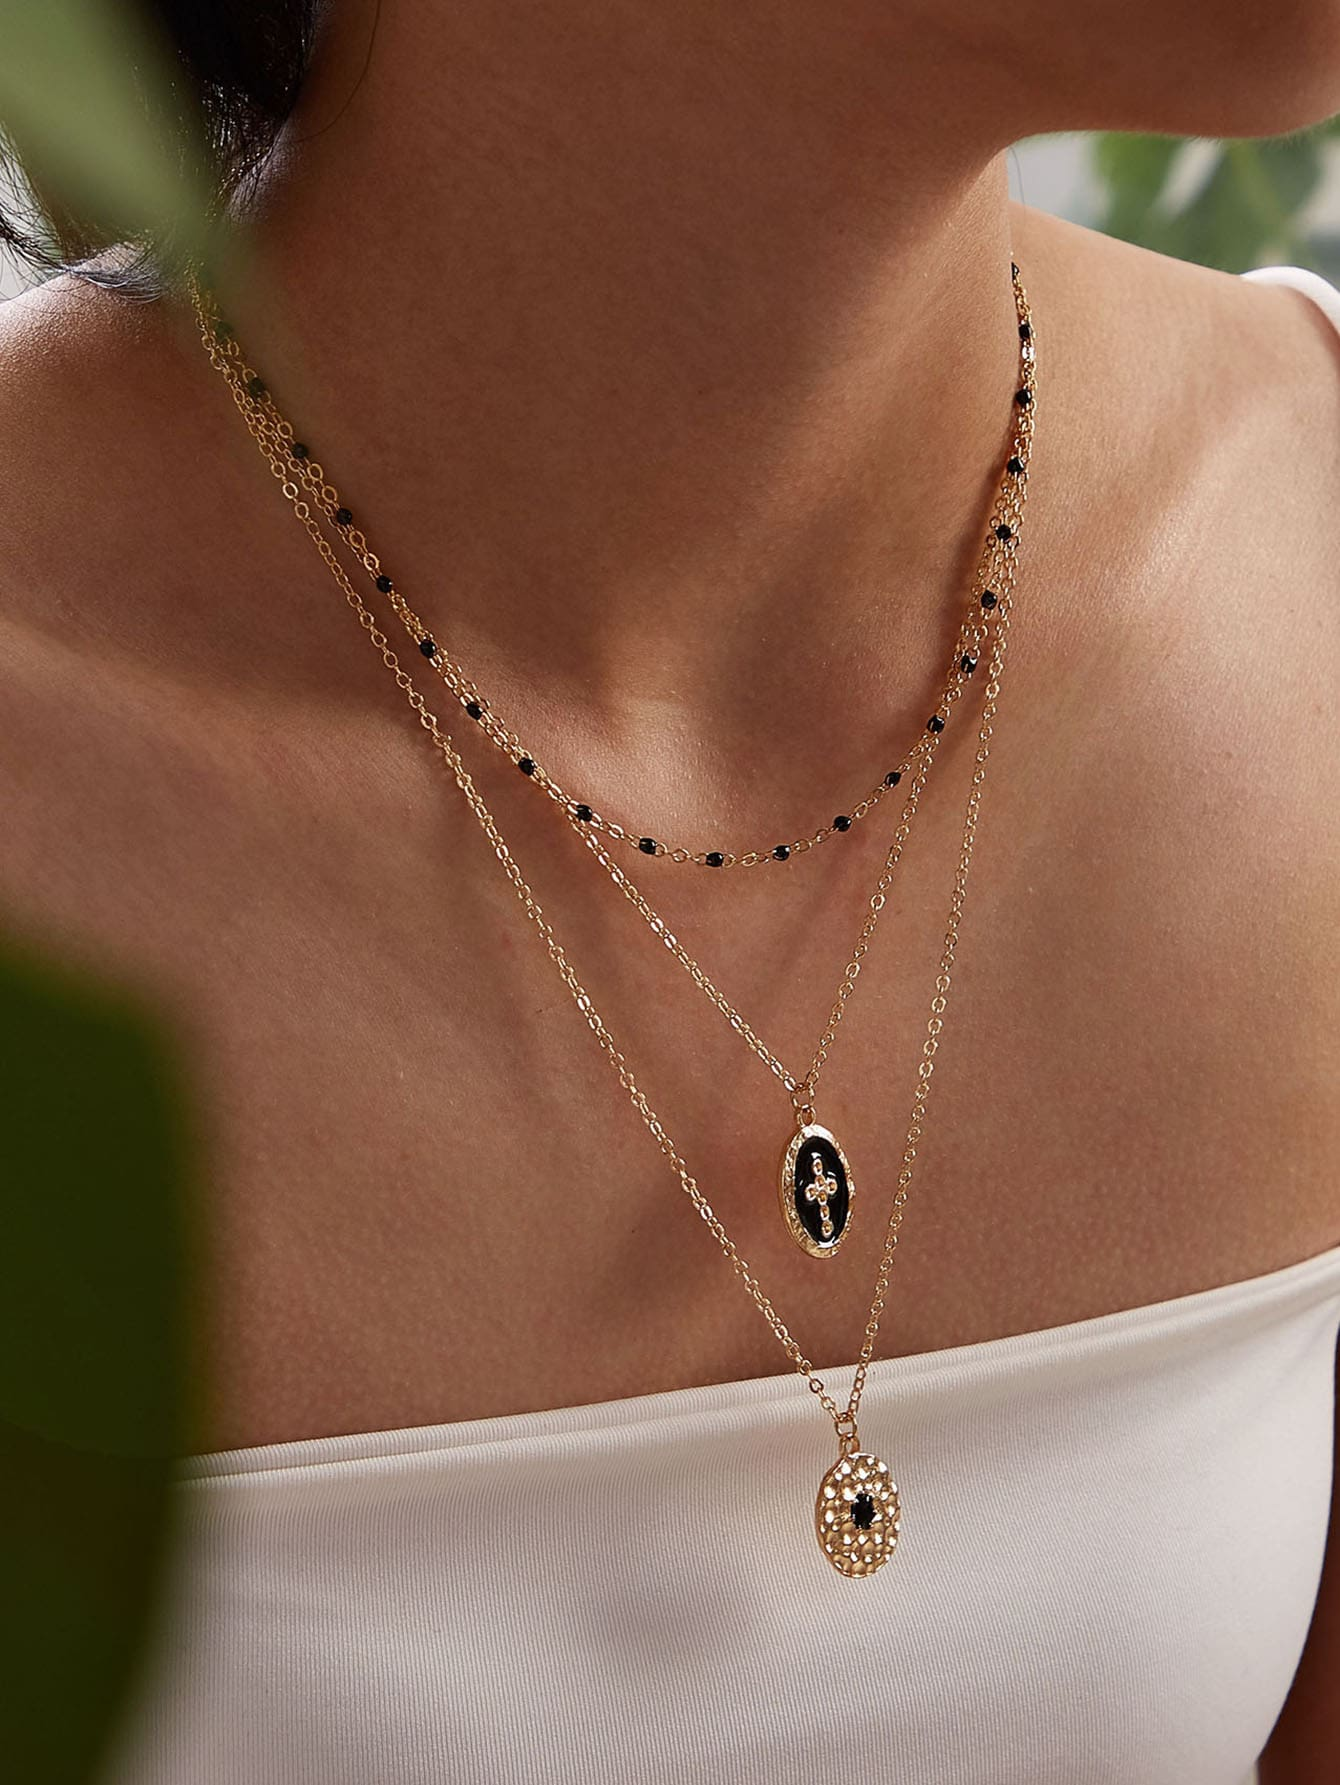 Cross Engraved Geometric Charm Layered Necklace 1pc